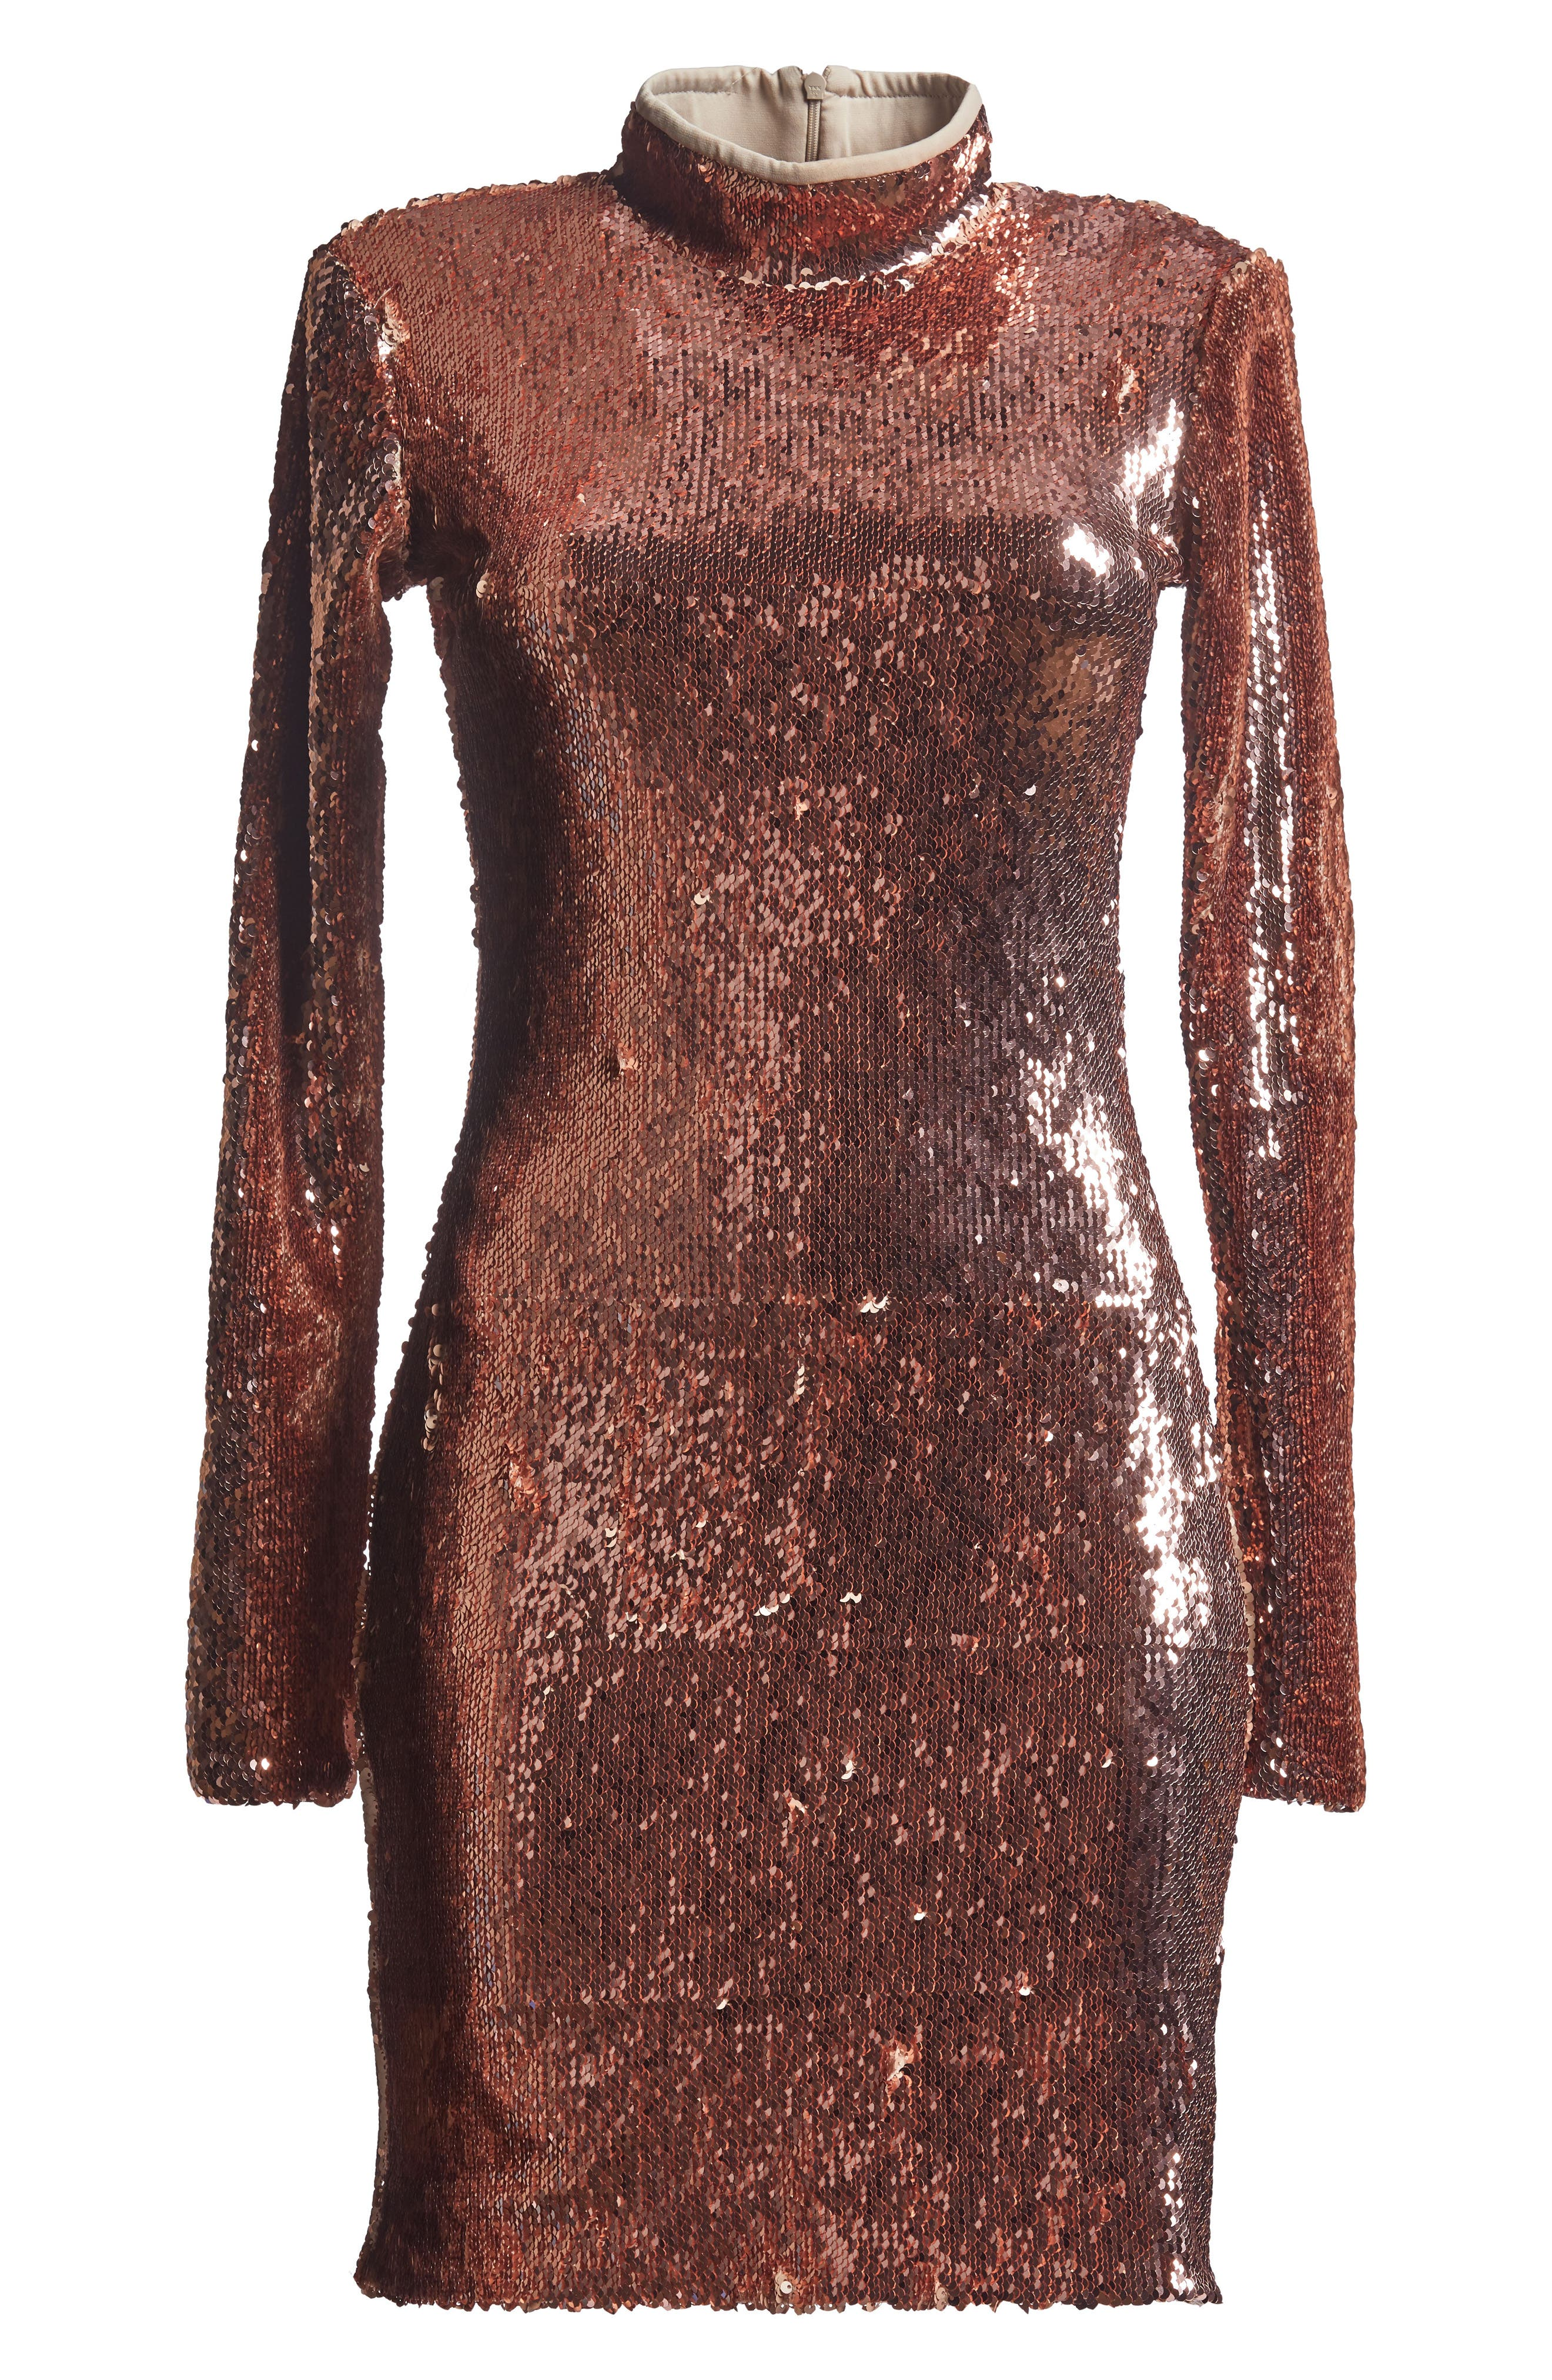 Katy Reversible Sequin Body-Con Dress,                             Alternate thumbnail 8, color,                             ROSE GOLD/ NUDE